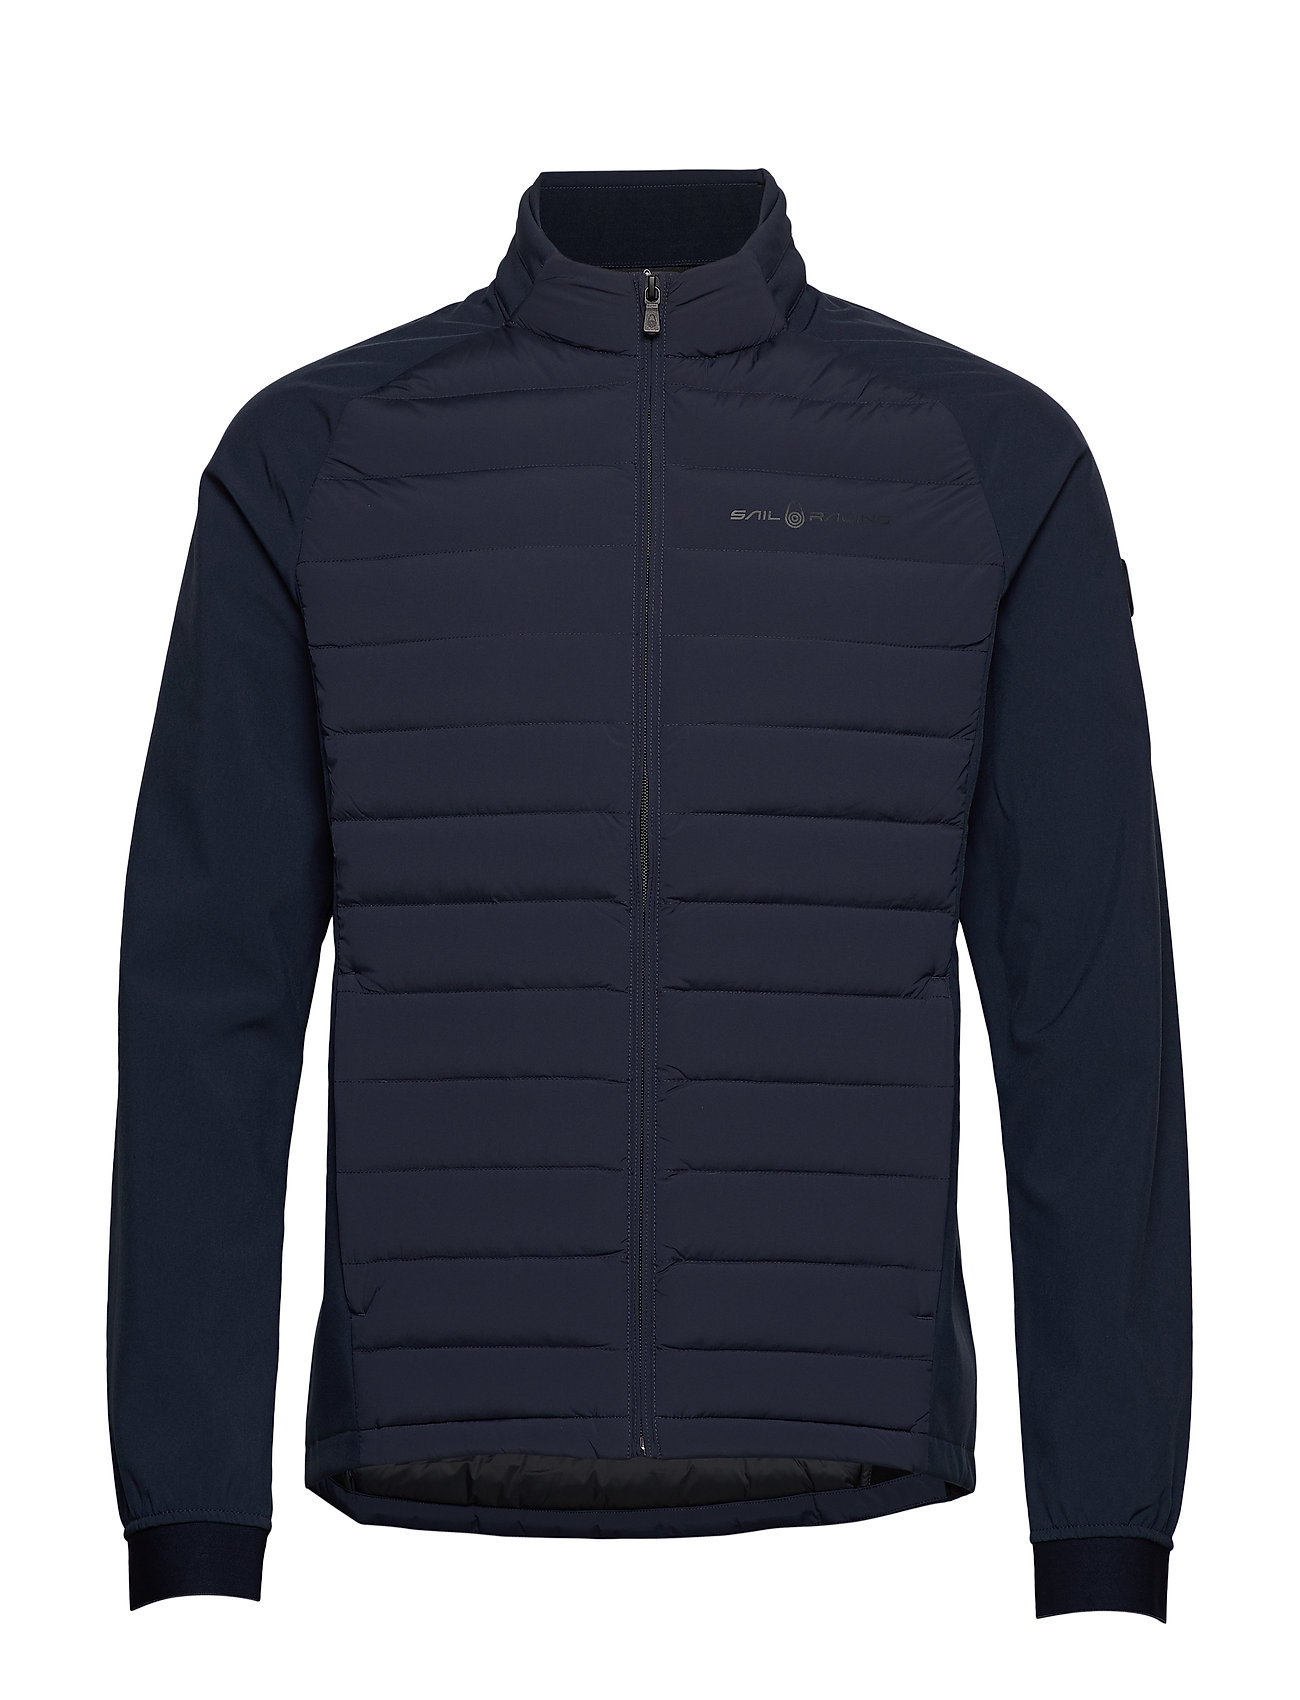 Sail Racing RACE HYBRID JACKET - NAVY